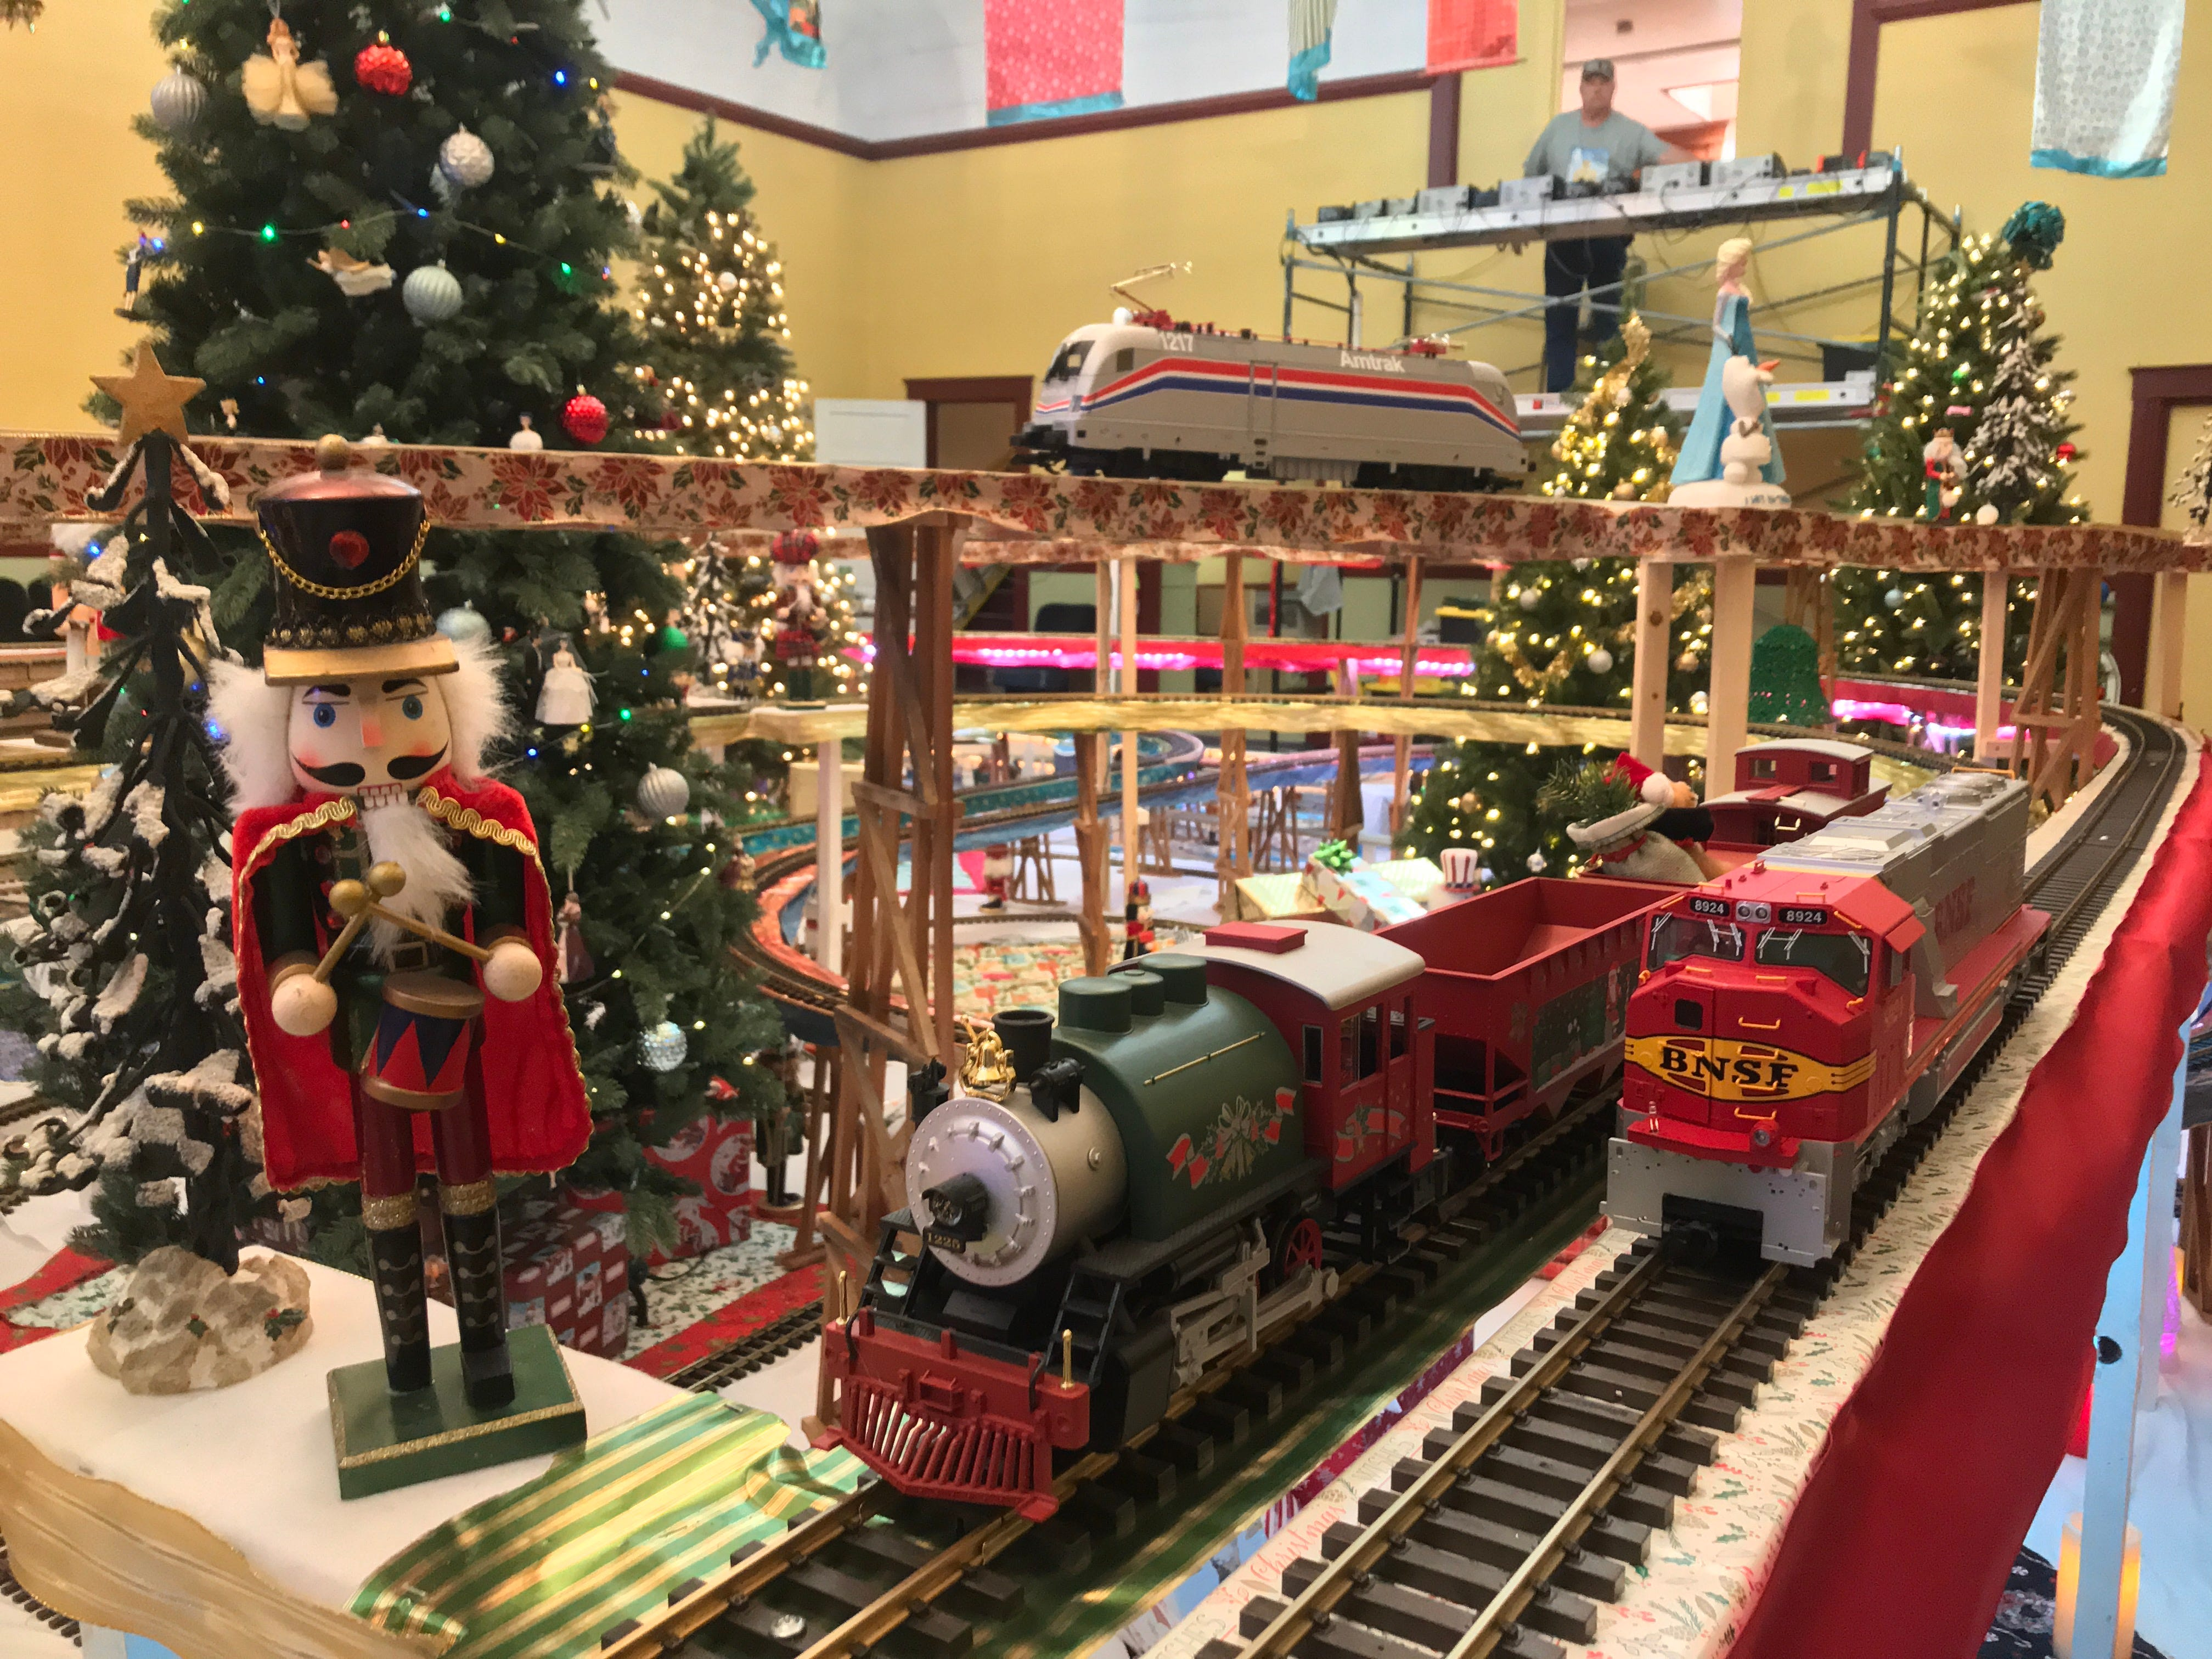 Trains go past a nutcracker in the Odd Fellows Christmas train display in Santa Paula.